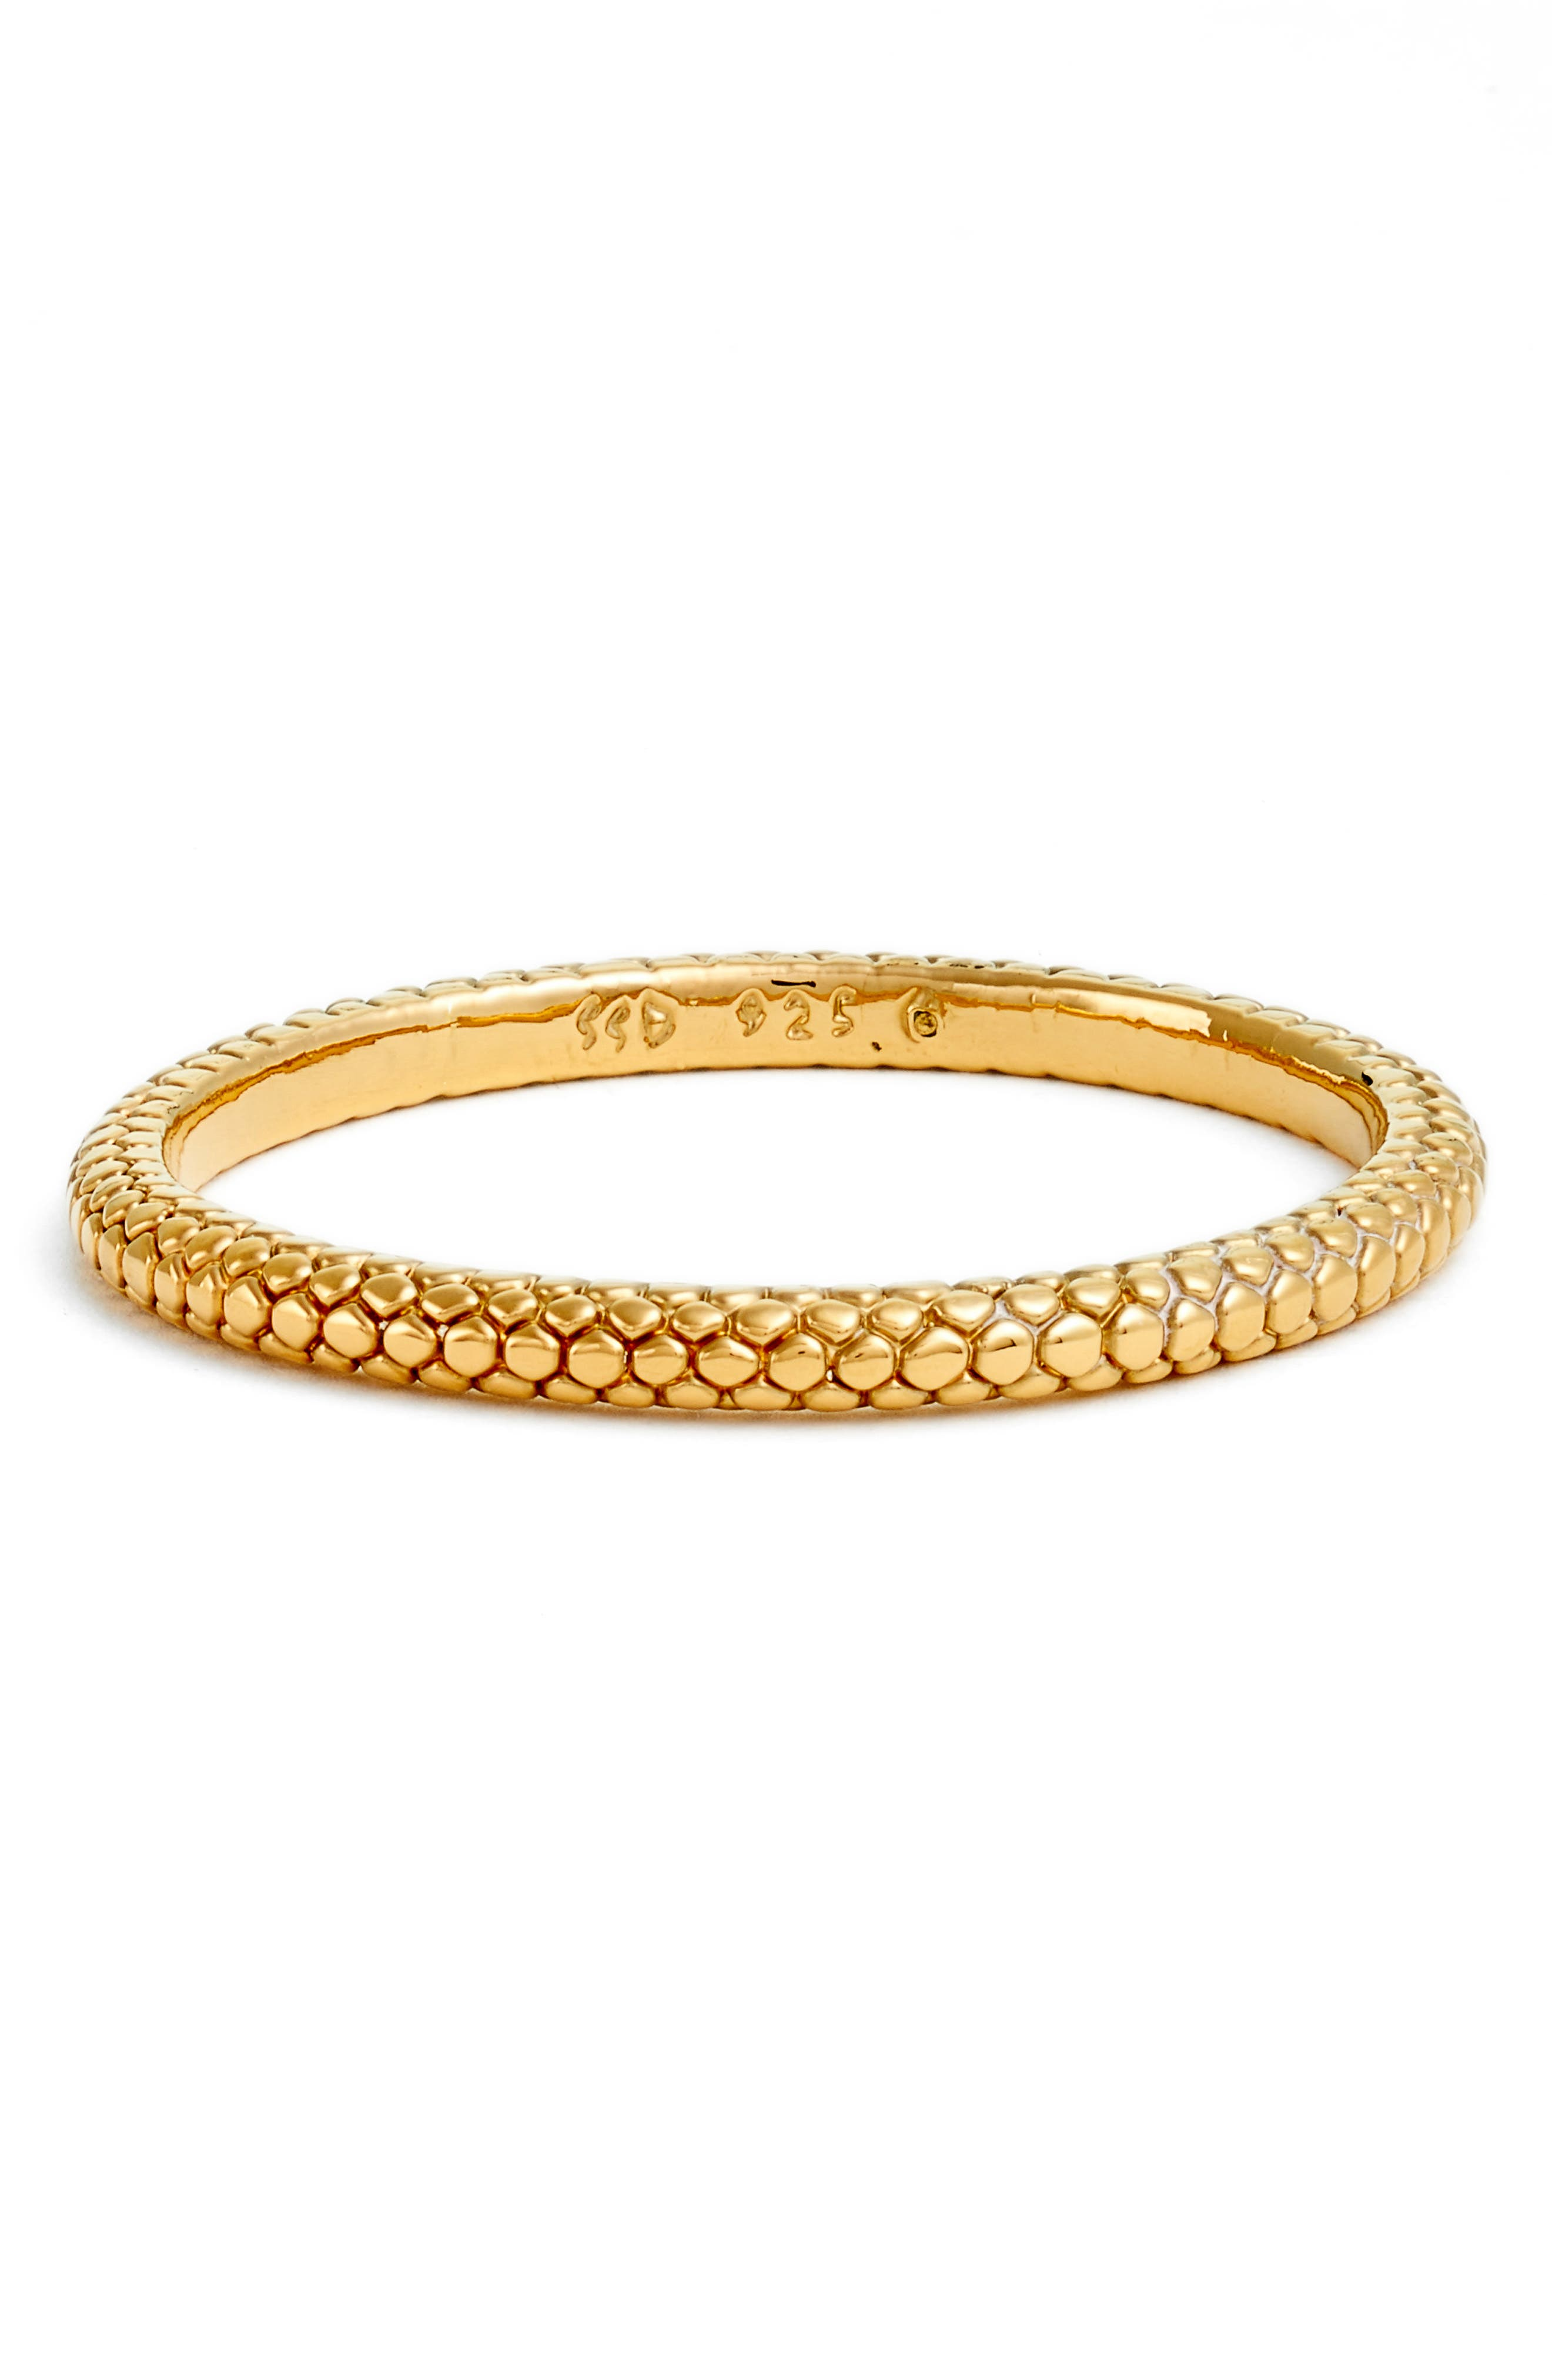 Simon Sebbag Thin Pebble Texture Vermeil Bangle